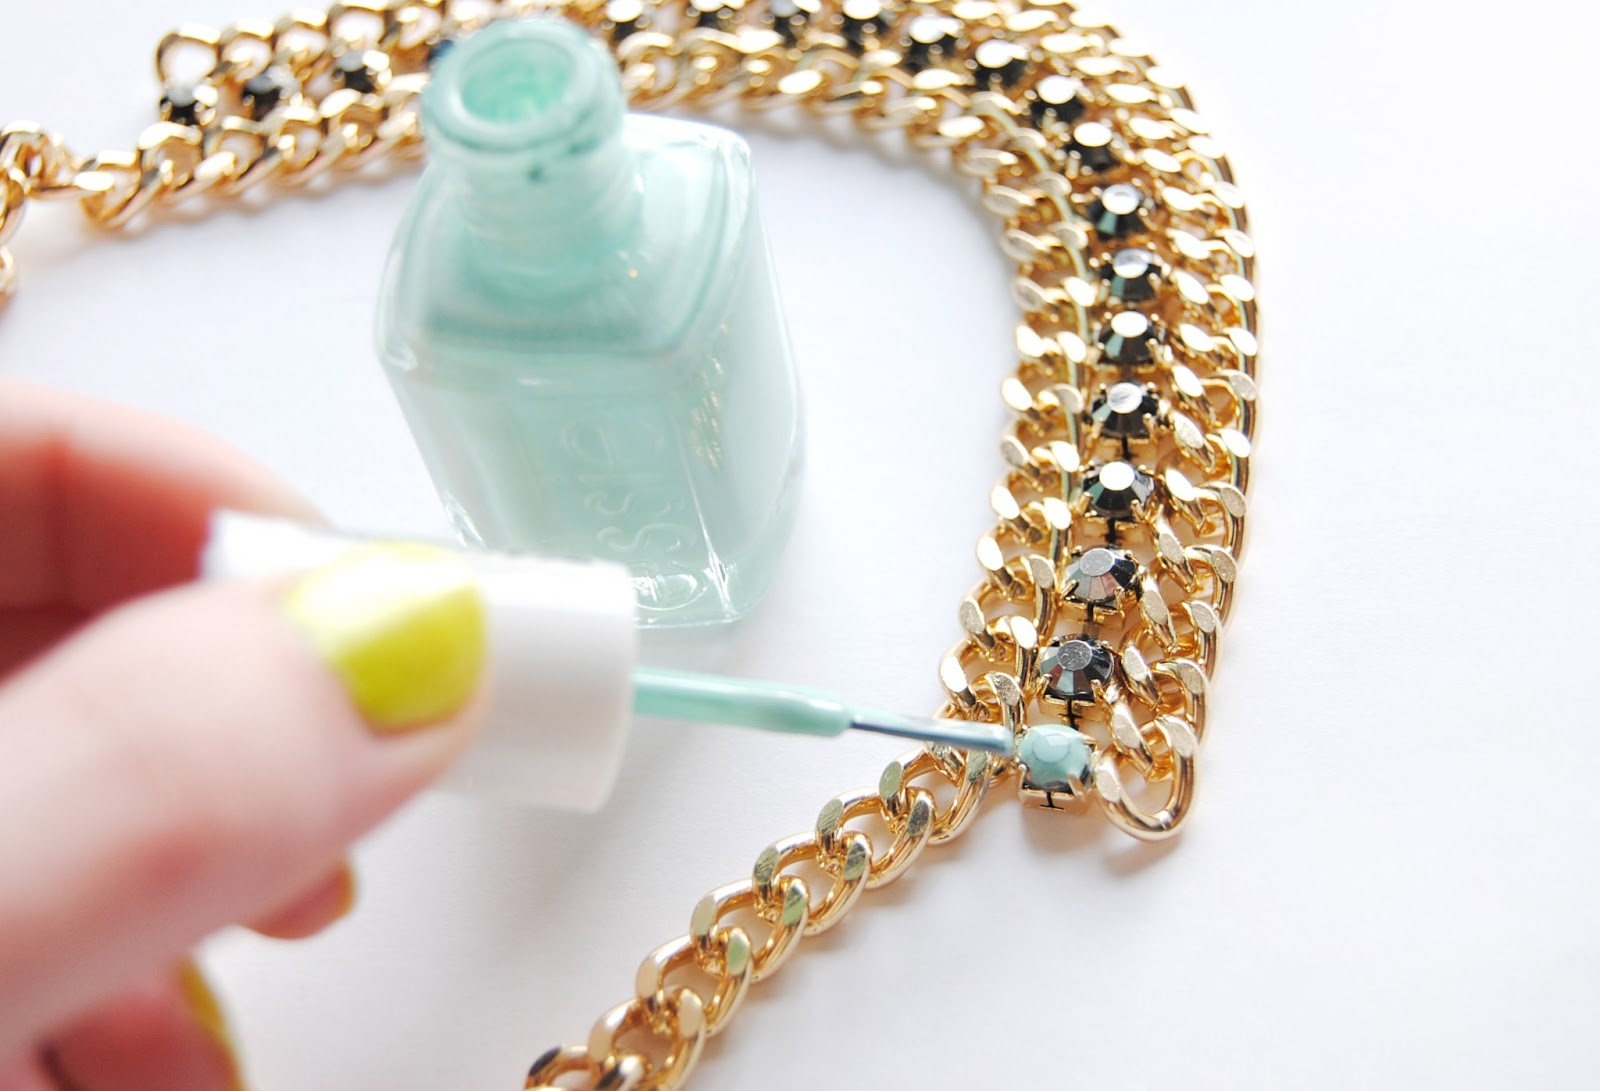 Extraordinary Uses Of Nail Paint And Nail Paint Remover